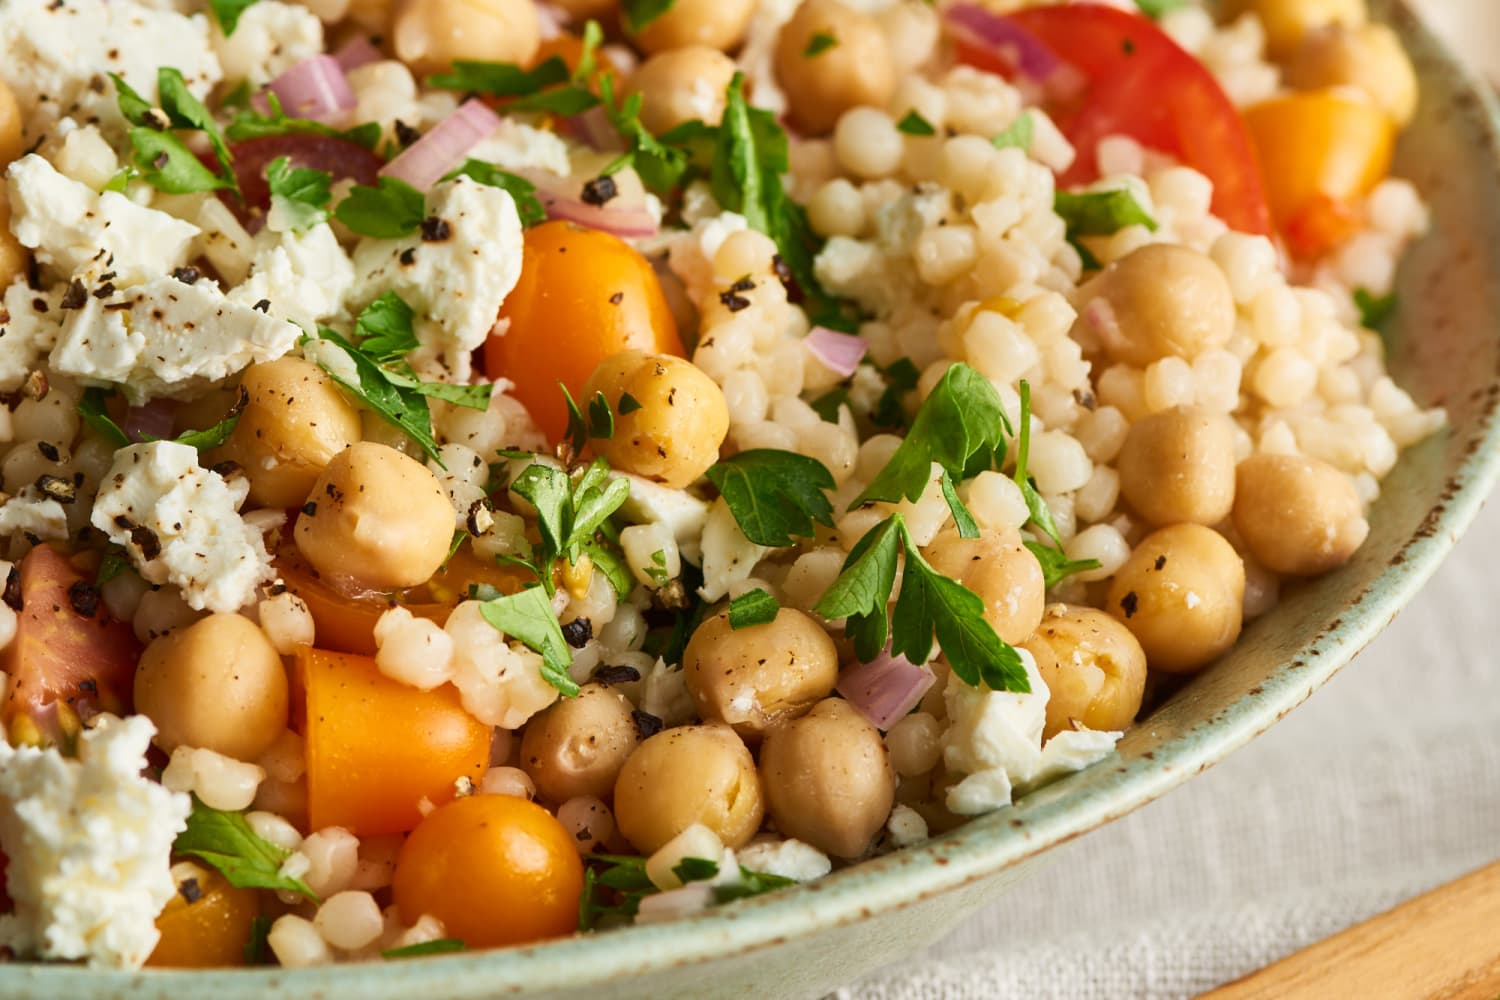 25 Easy Chickpea Recipes What To Make With A Can Of Chickpeas Kitchn